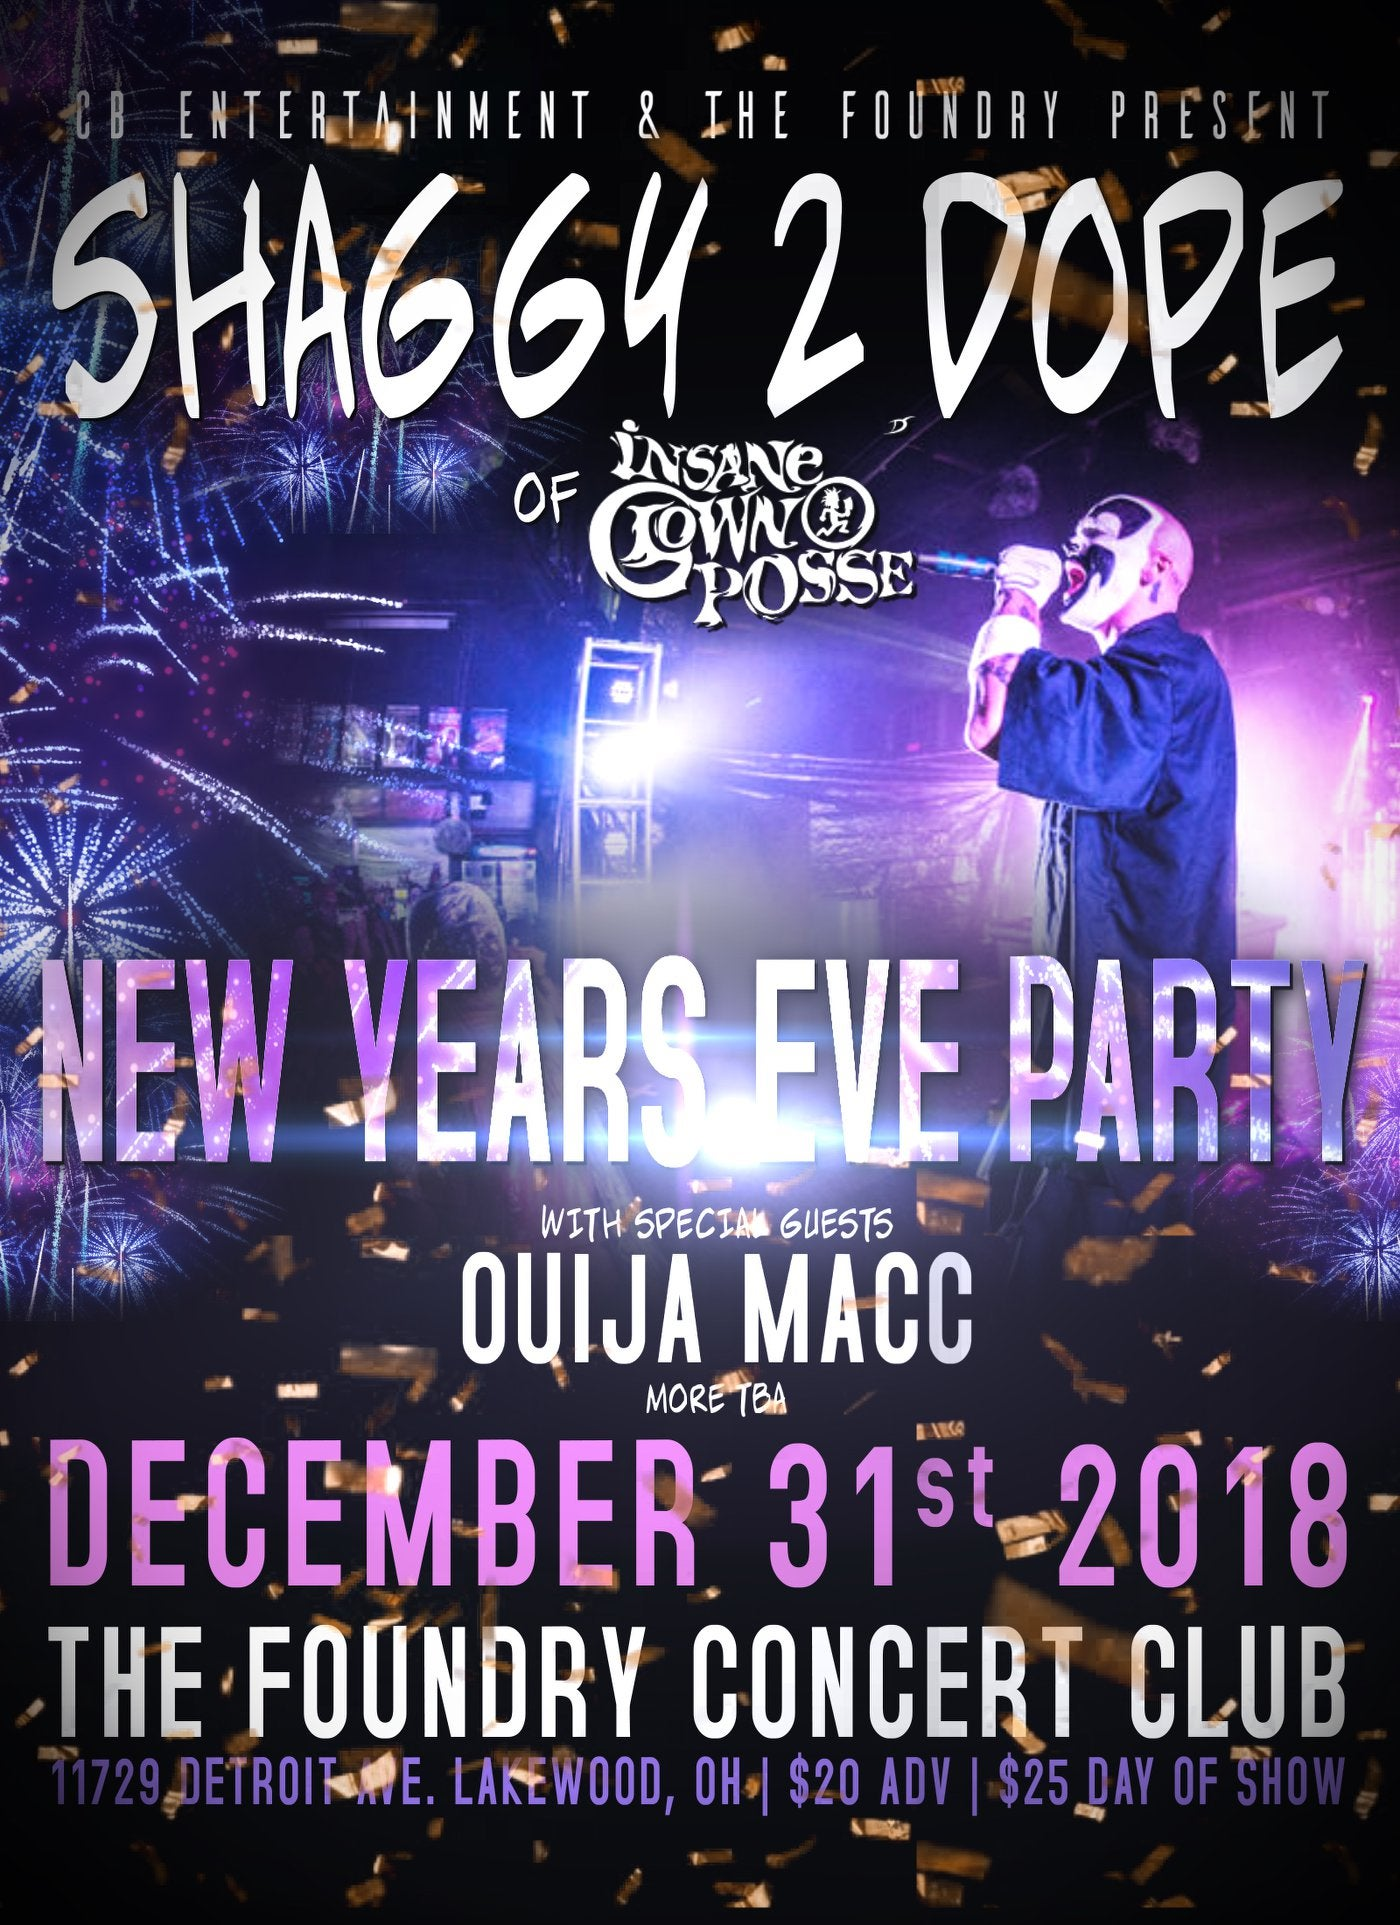 Image of Shaggy 2 Dope, Ouija Macc, A-LOW Rx & Zigwap New Years Eve Party @ The Foundry in Lakewood